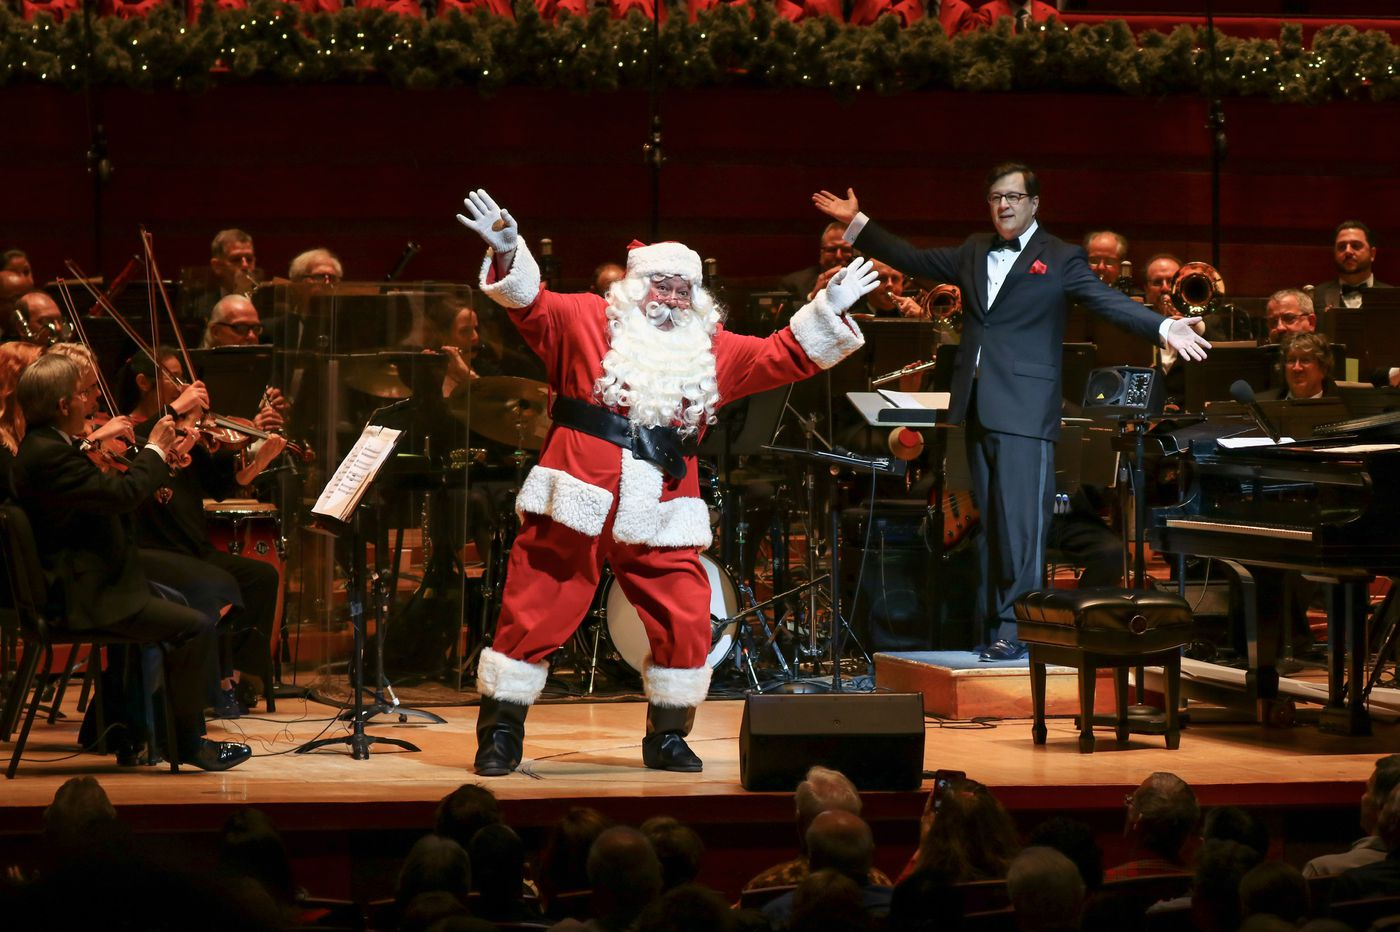 With new conductor Todd Ellison, Philly Pops takes a misty, nostalgic view of Christmas